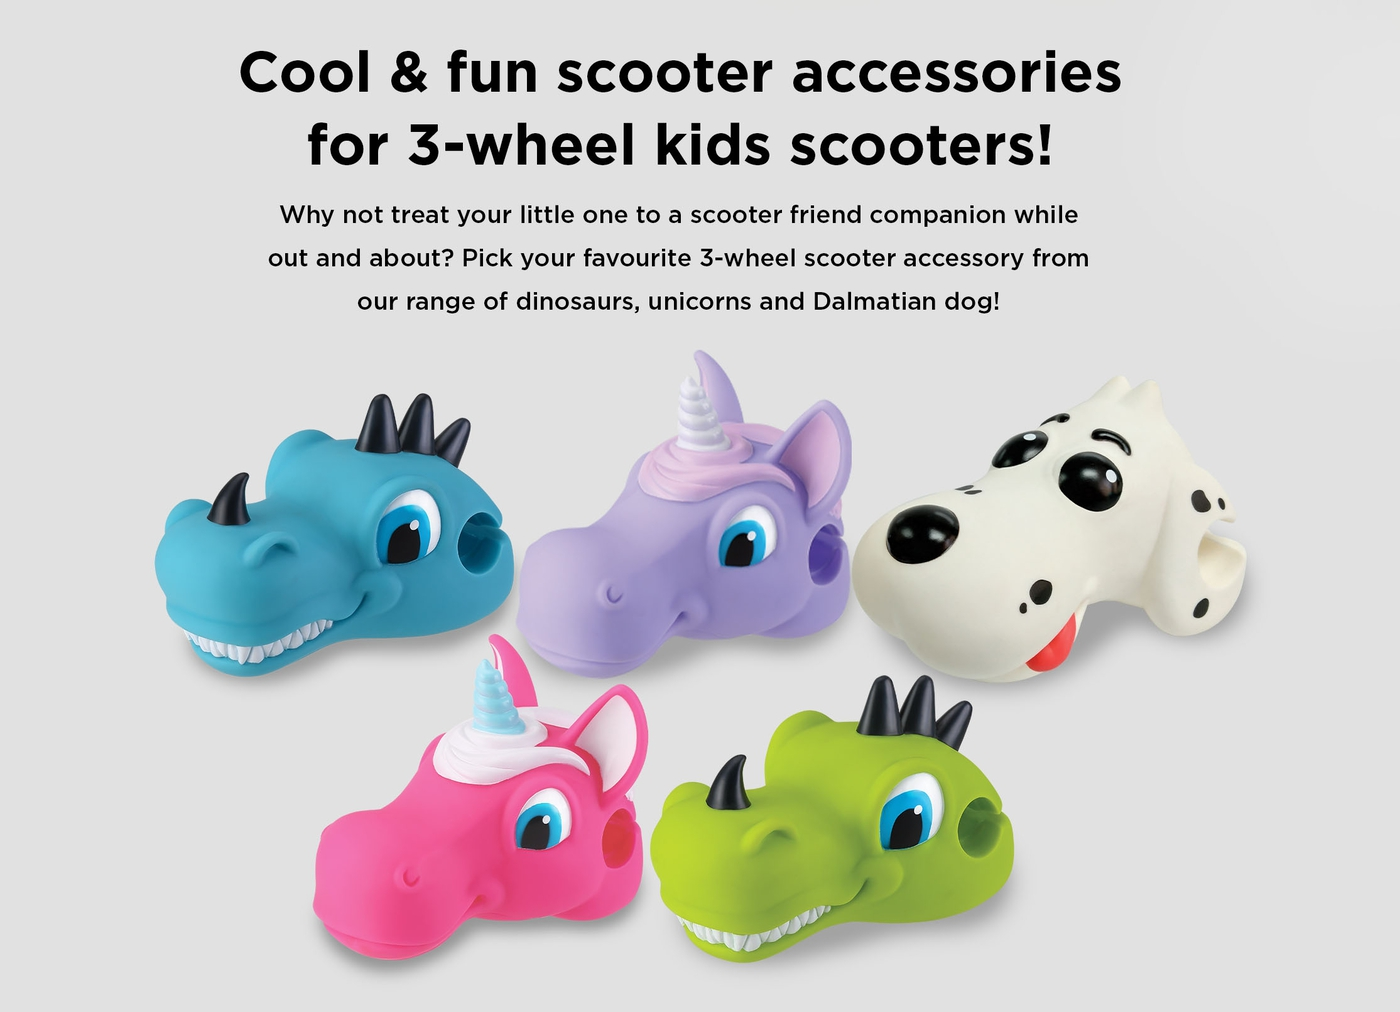 Cool & fun scooter accessories for 3-wheel kids scooters!